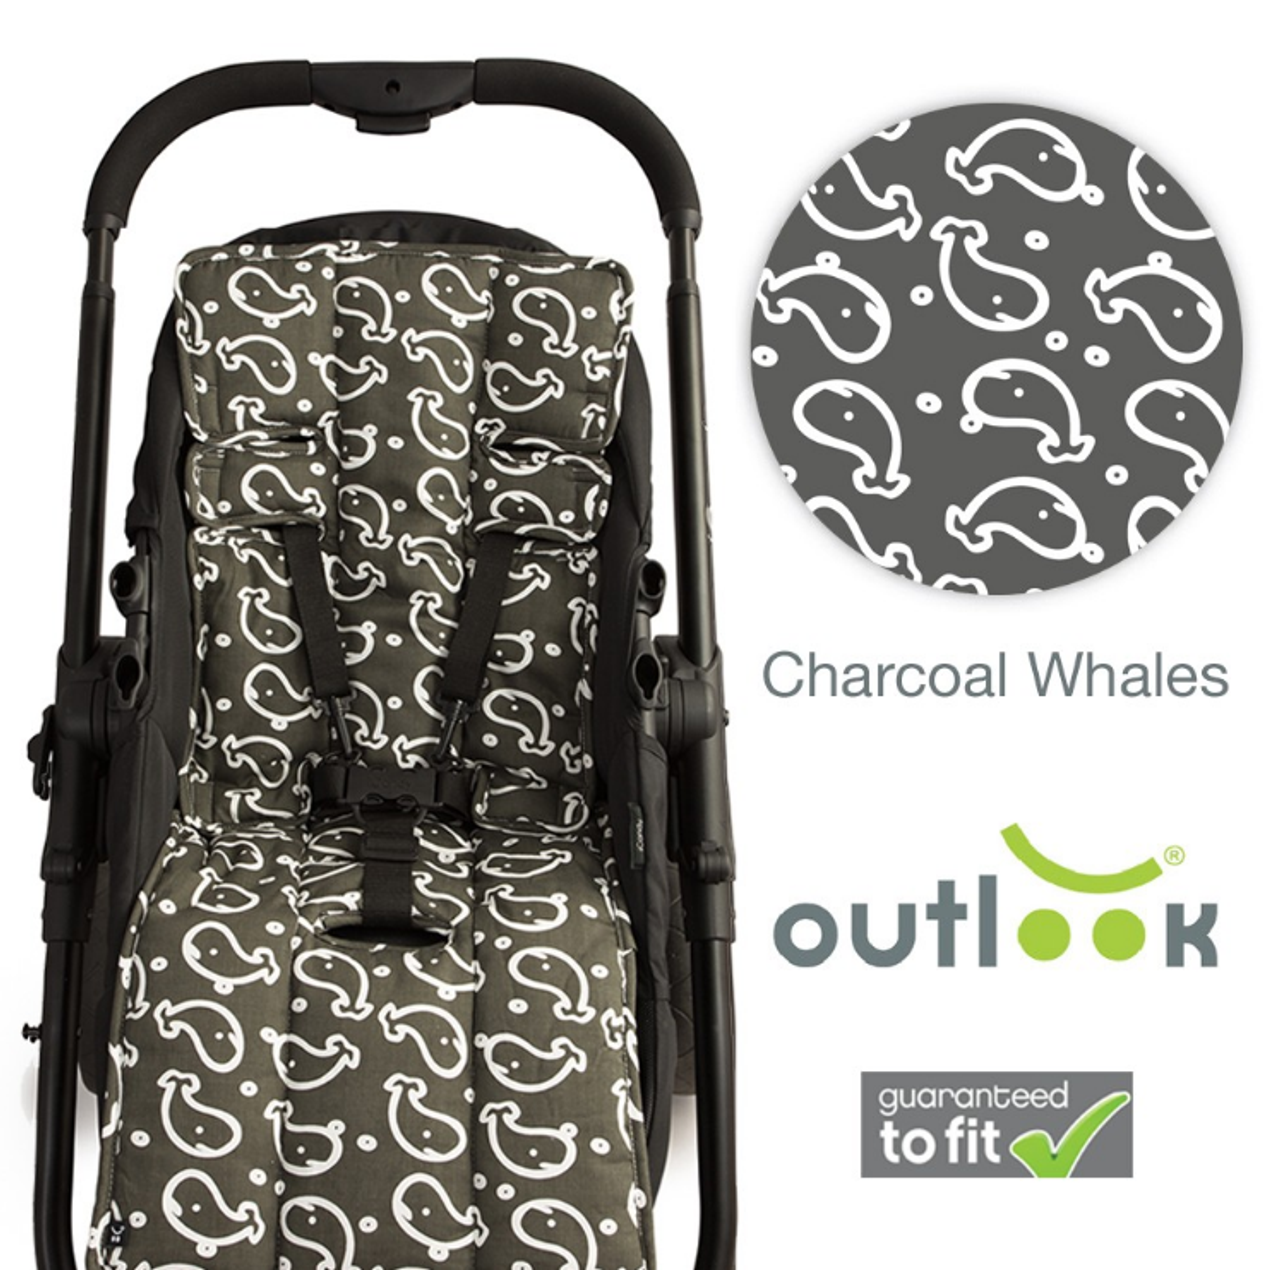 Outlook Pram Liner - CHARCOAL WHALES